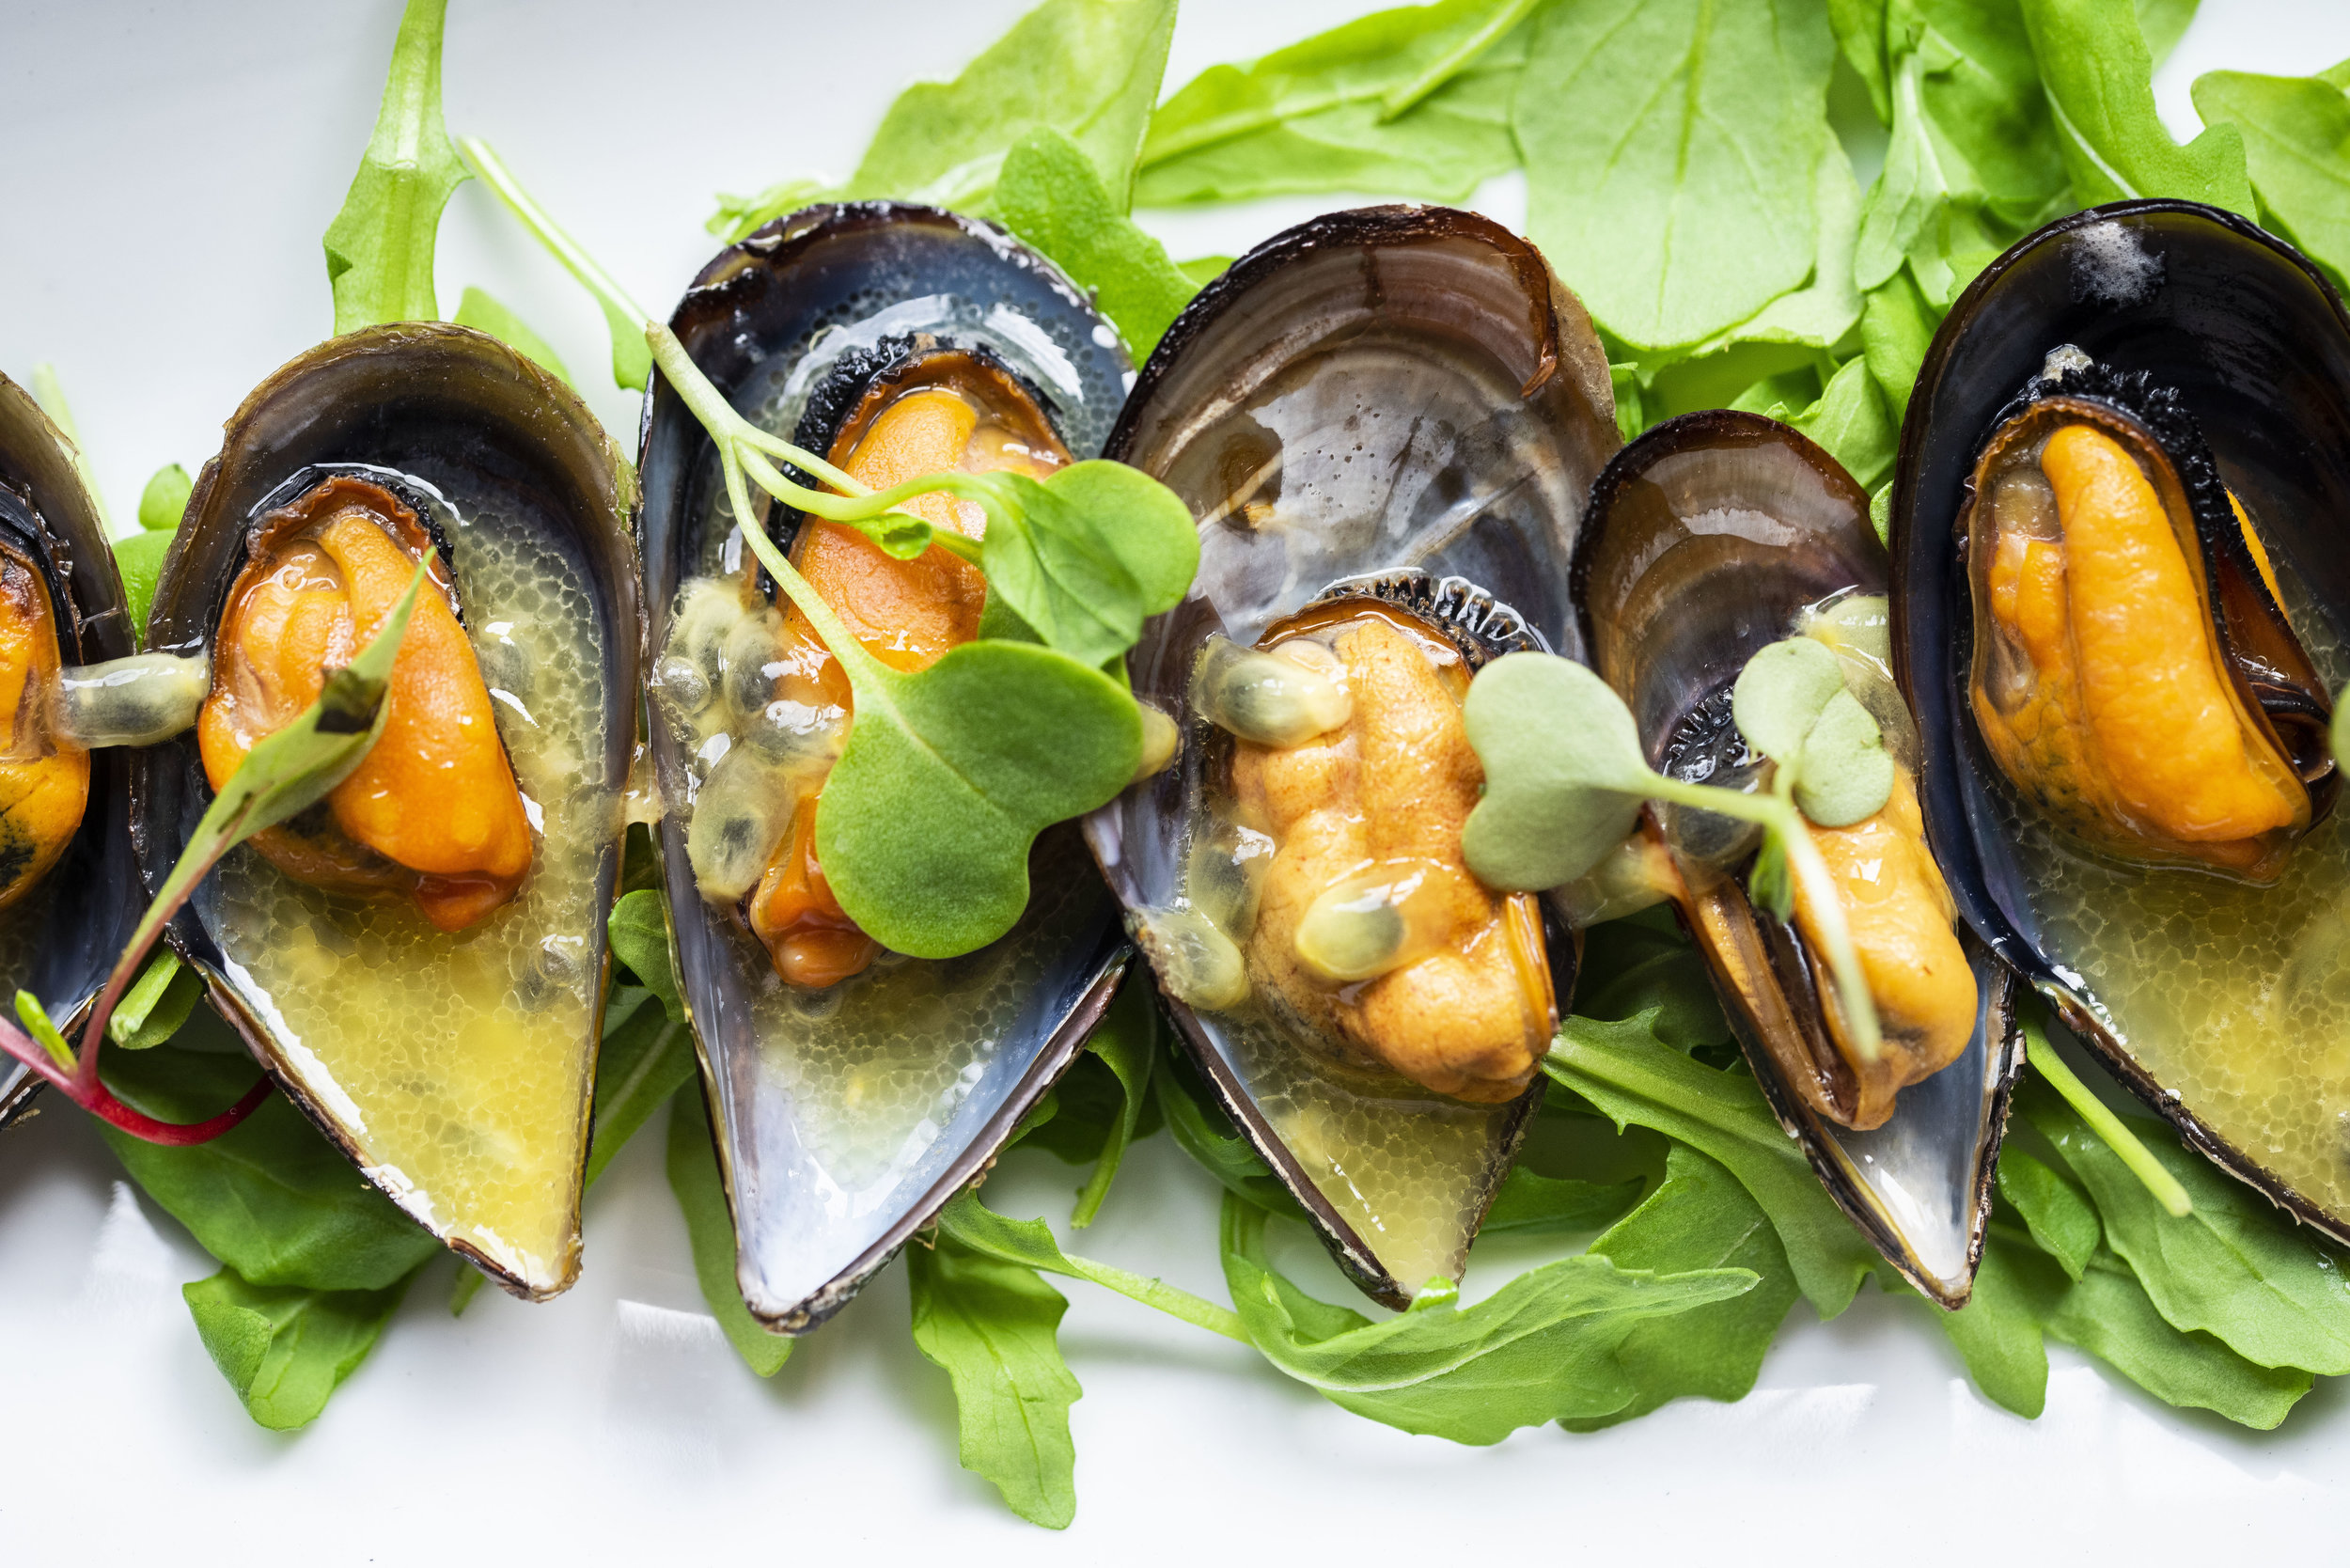 Grilled mussels at Calabrasa, Barcelona. Photo © Barcelona Food Experience.